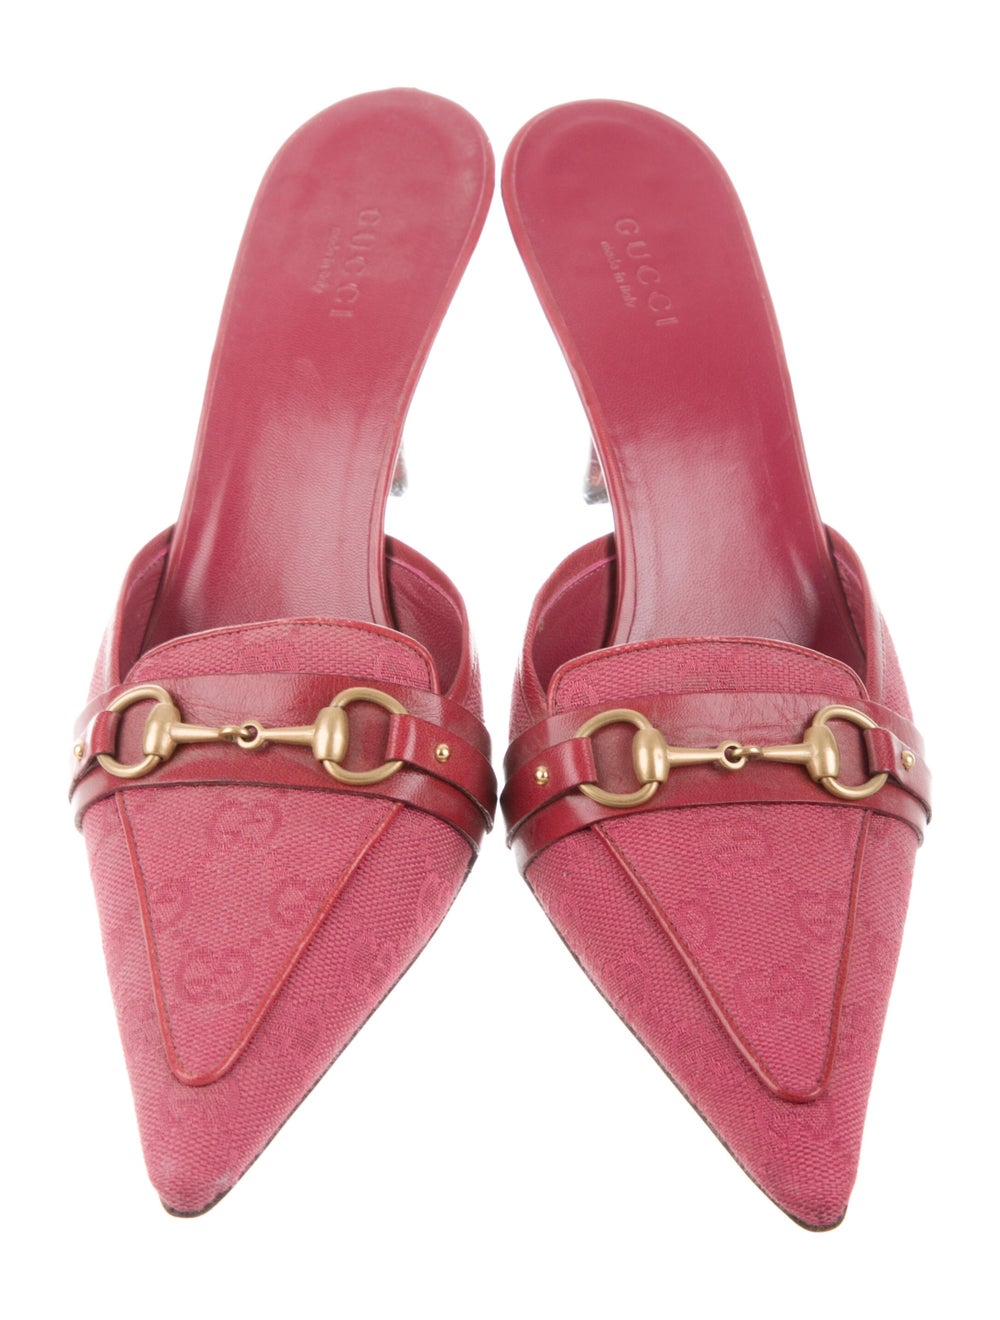 Gucci GG Canvas Mules Pink - image 3